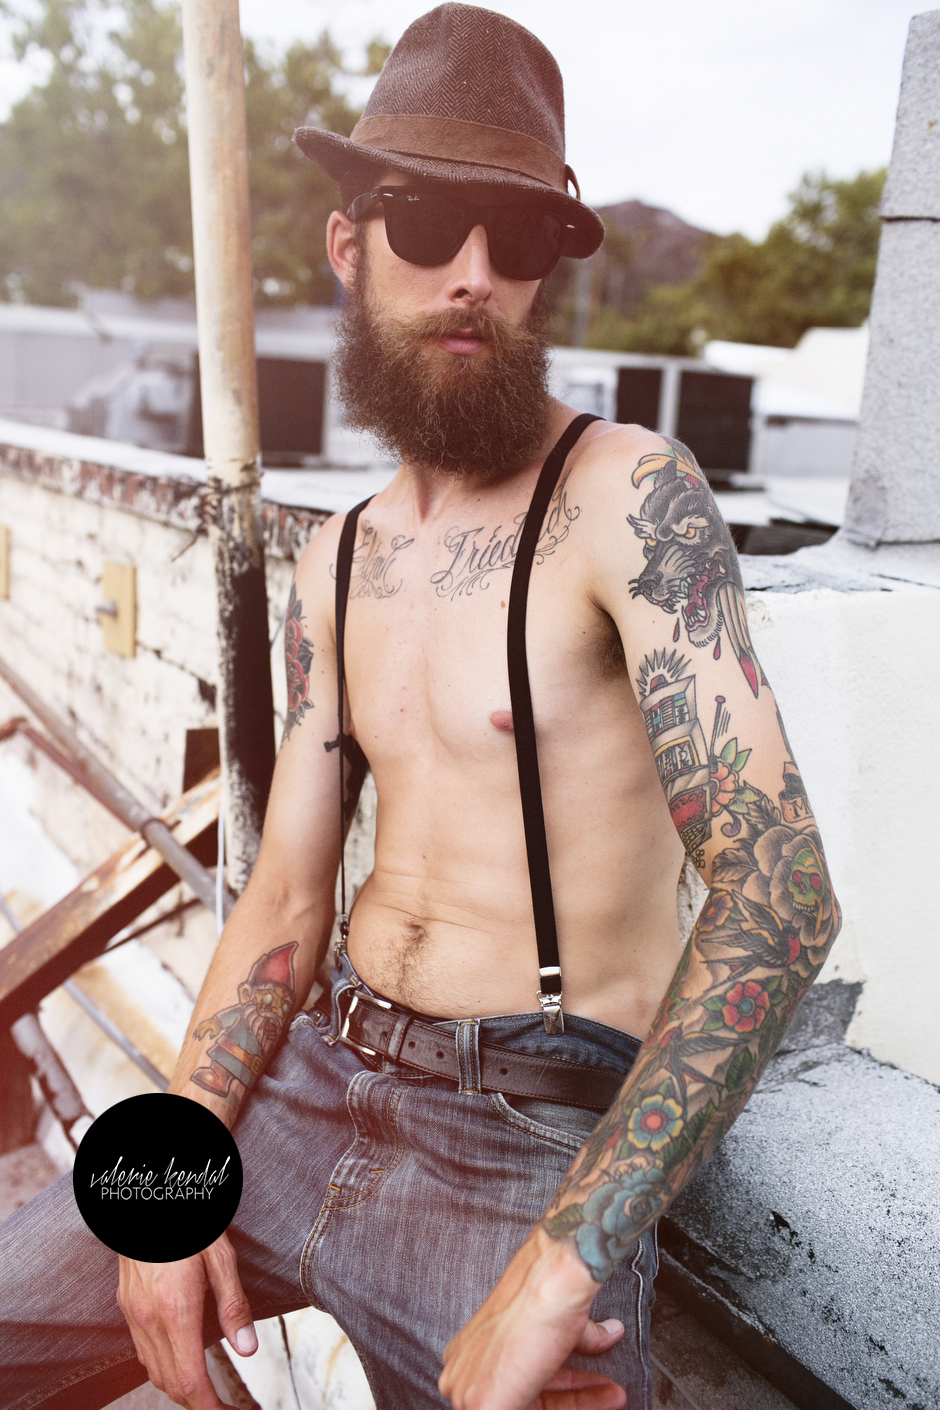 Los-Angeles-Tattoo-Suspenders-Commercial-Lifestyle-Rooftop-Valerie-Kendal-Photography -Mark B 865.JPG